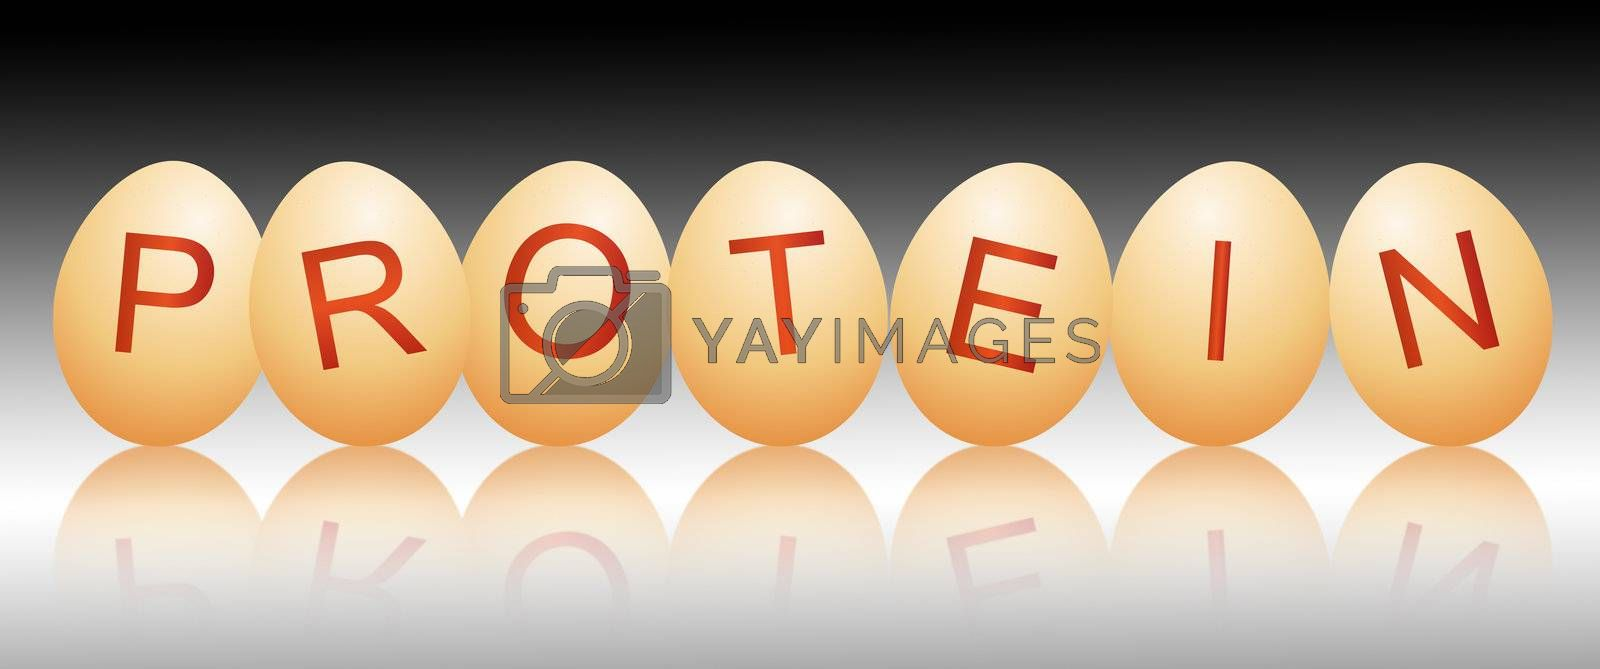 Illustration depicting a row of chicken eggs with letters spelling the word PROTEIN arranged over black and grey and reflecting into the foreground.